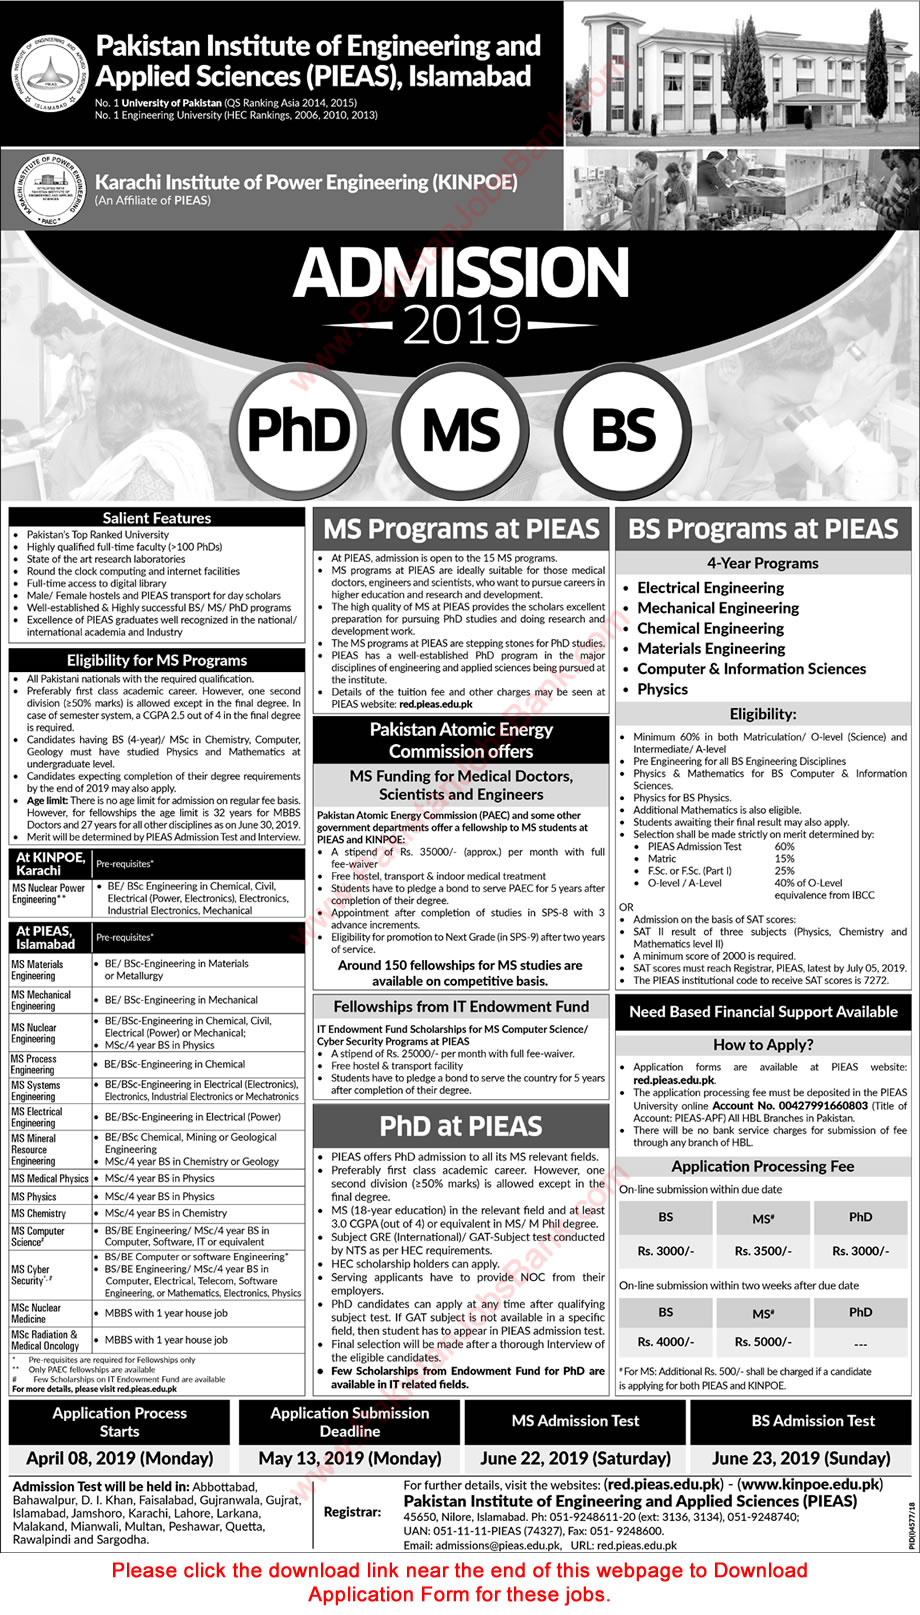 PIEAS Fellowships 2019 MS / Postgraduate Programs for Engineers